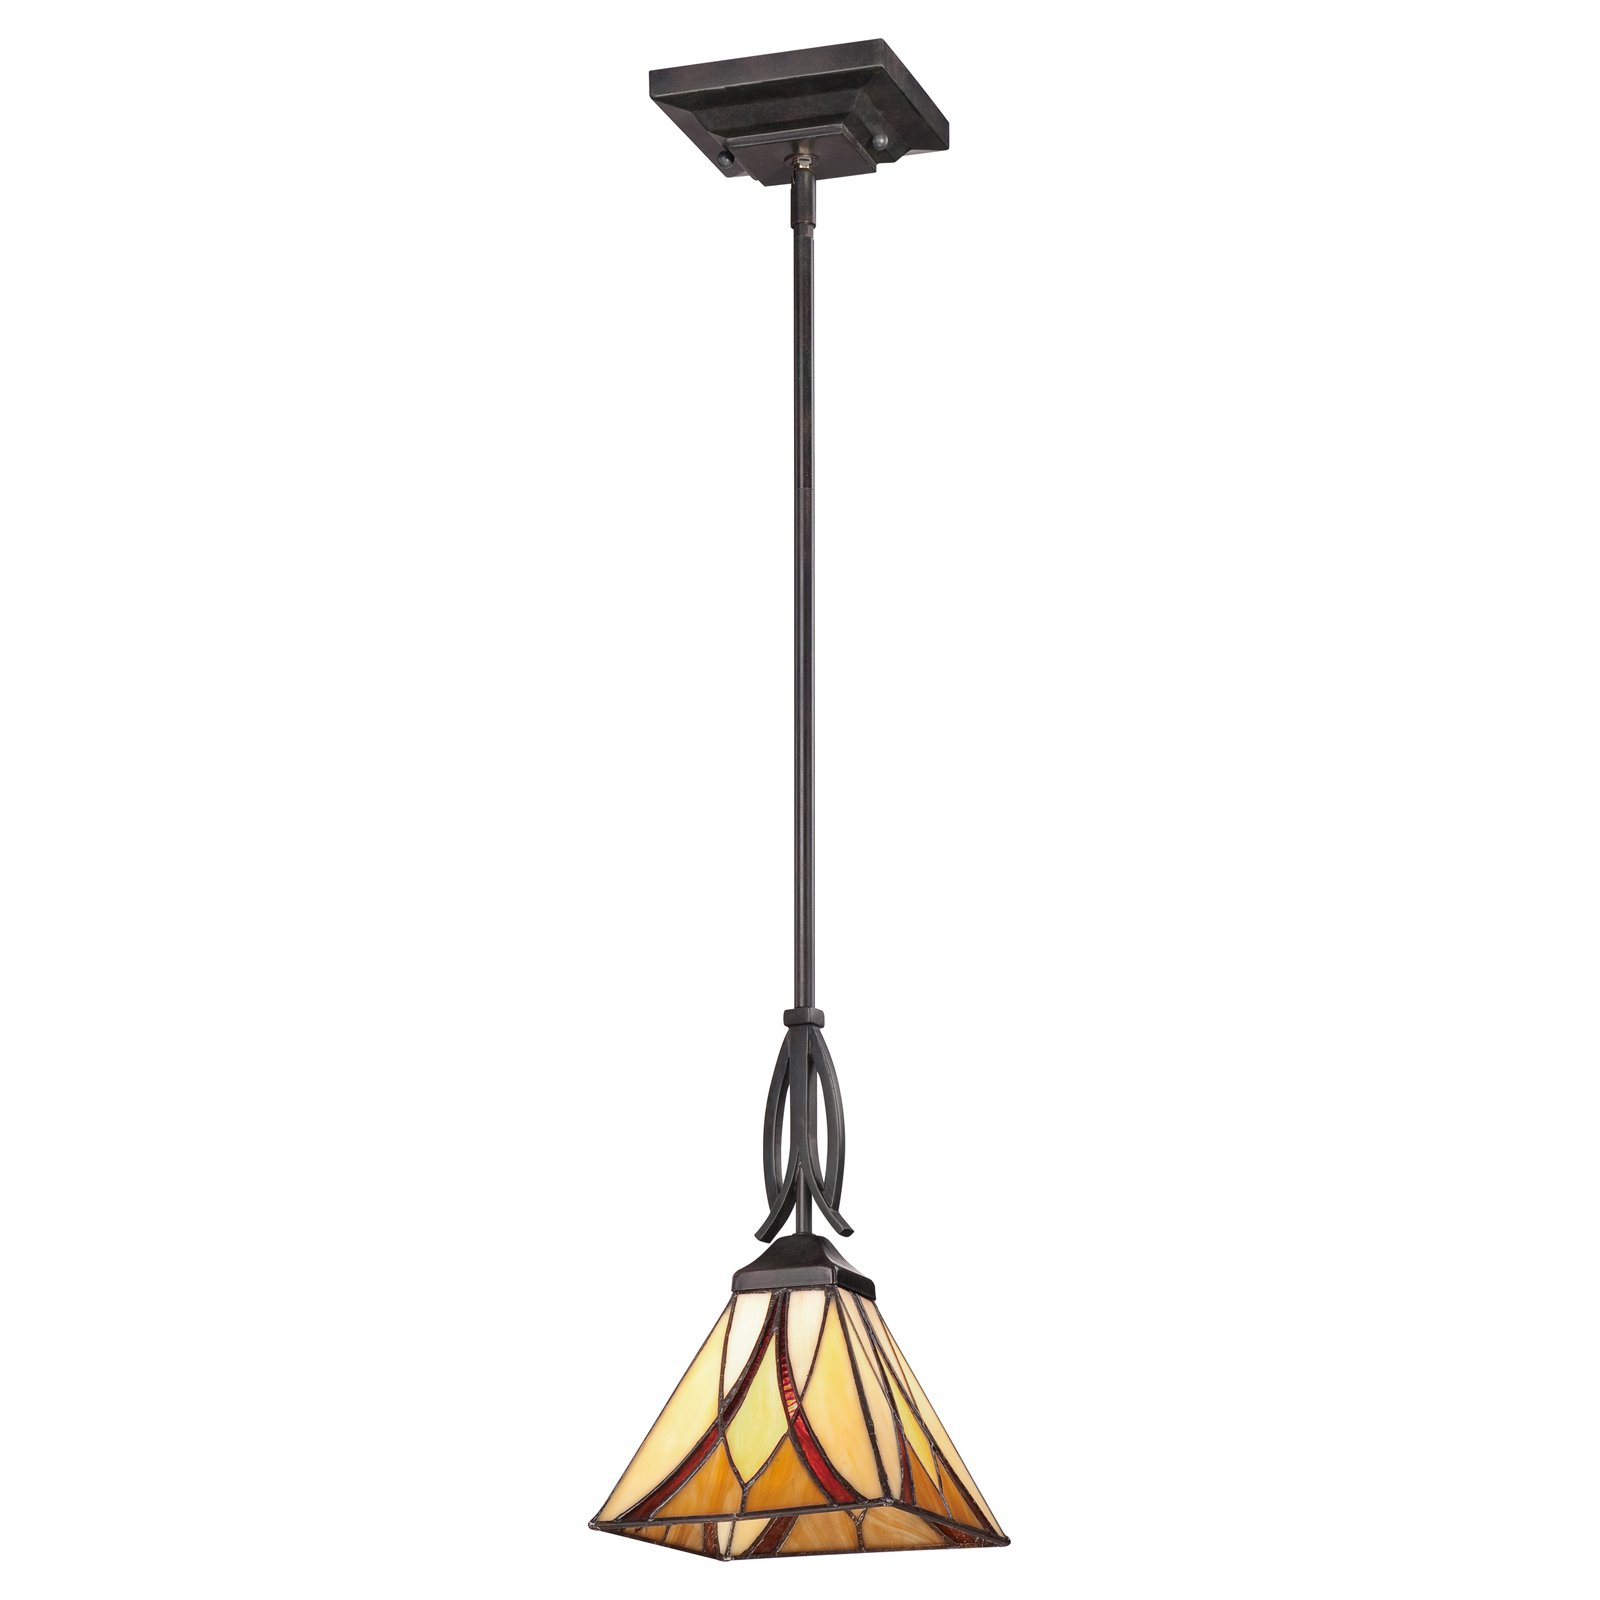 Quoizel Asheville TFAS1507VA Mini Pendant Light by Quoizel